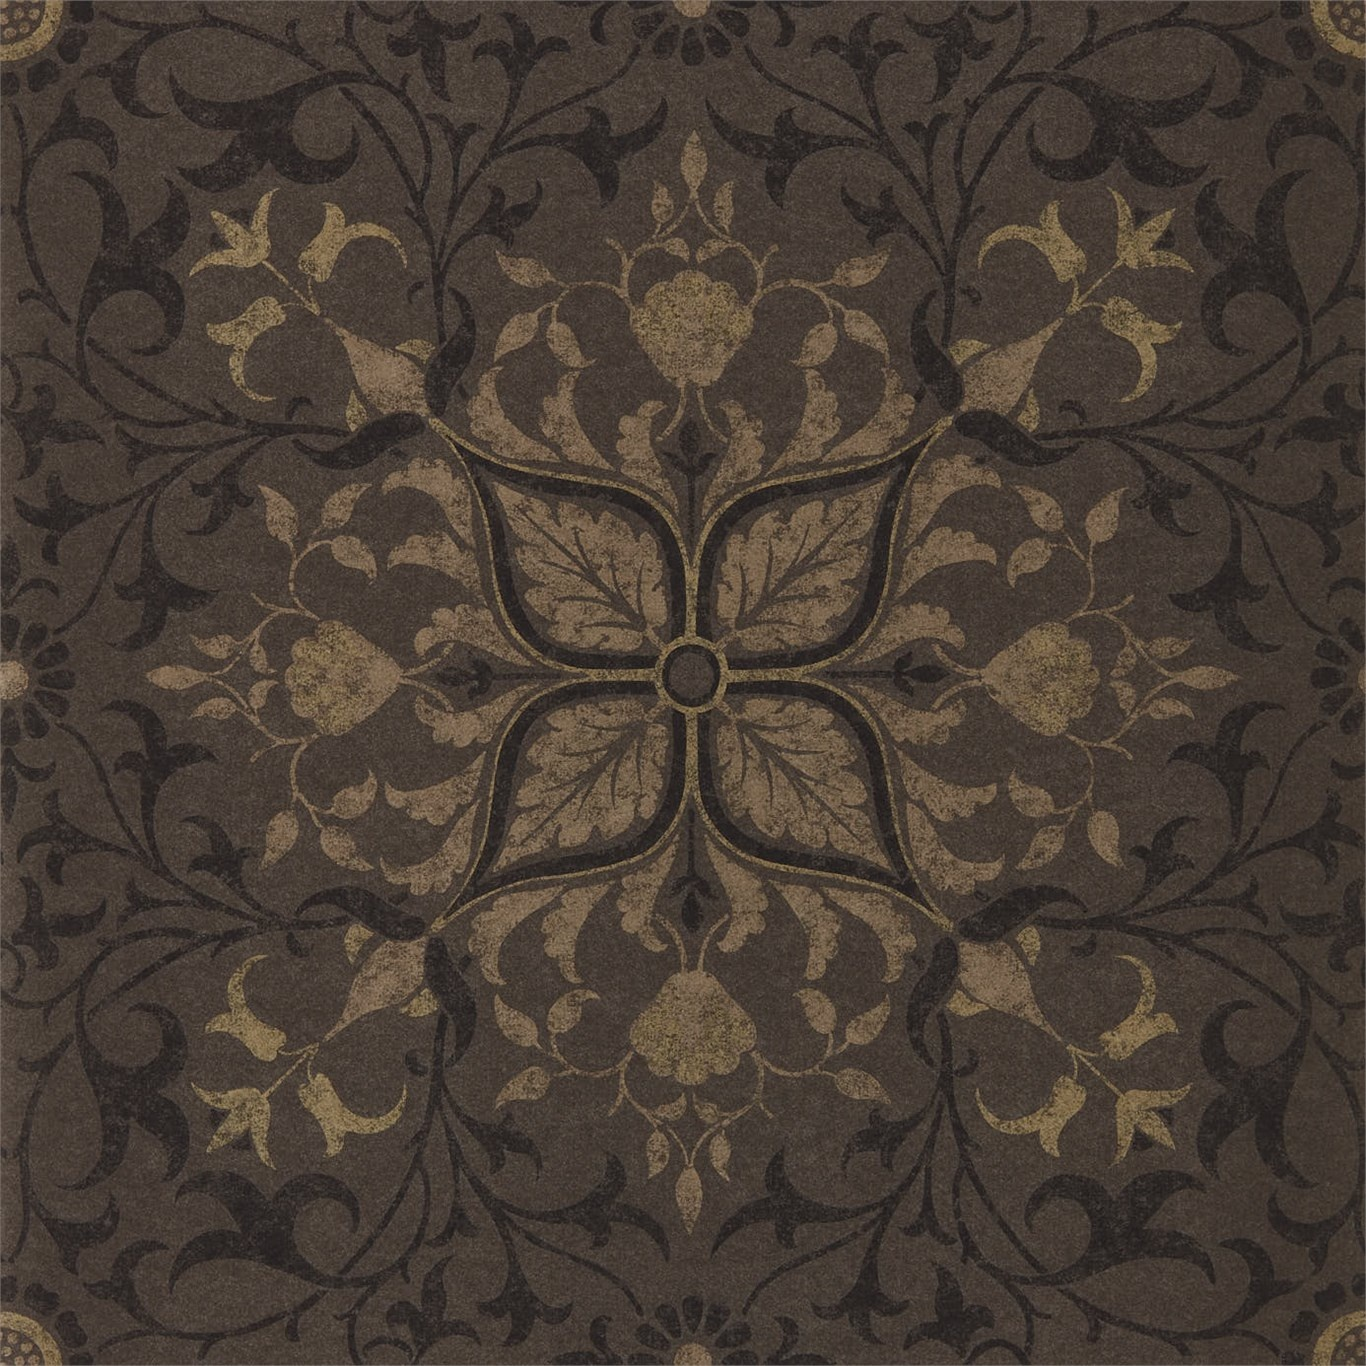 Image of Morris & Co Pure Net Ceiling Charcoal/Gold Wallpaper 216036